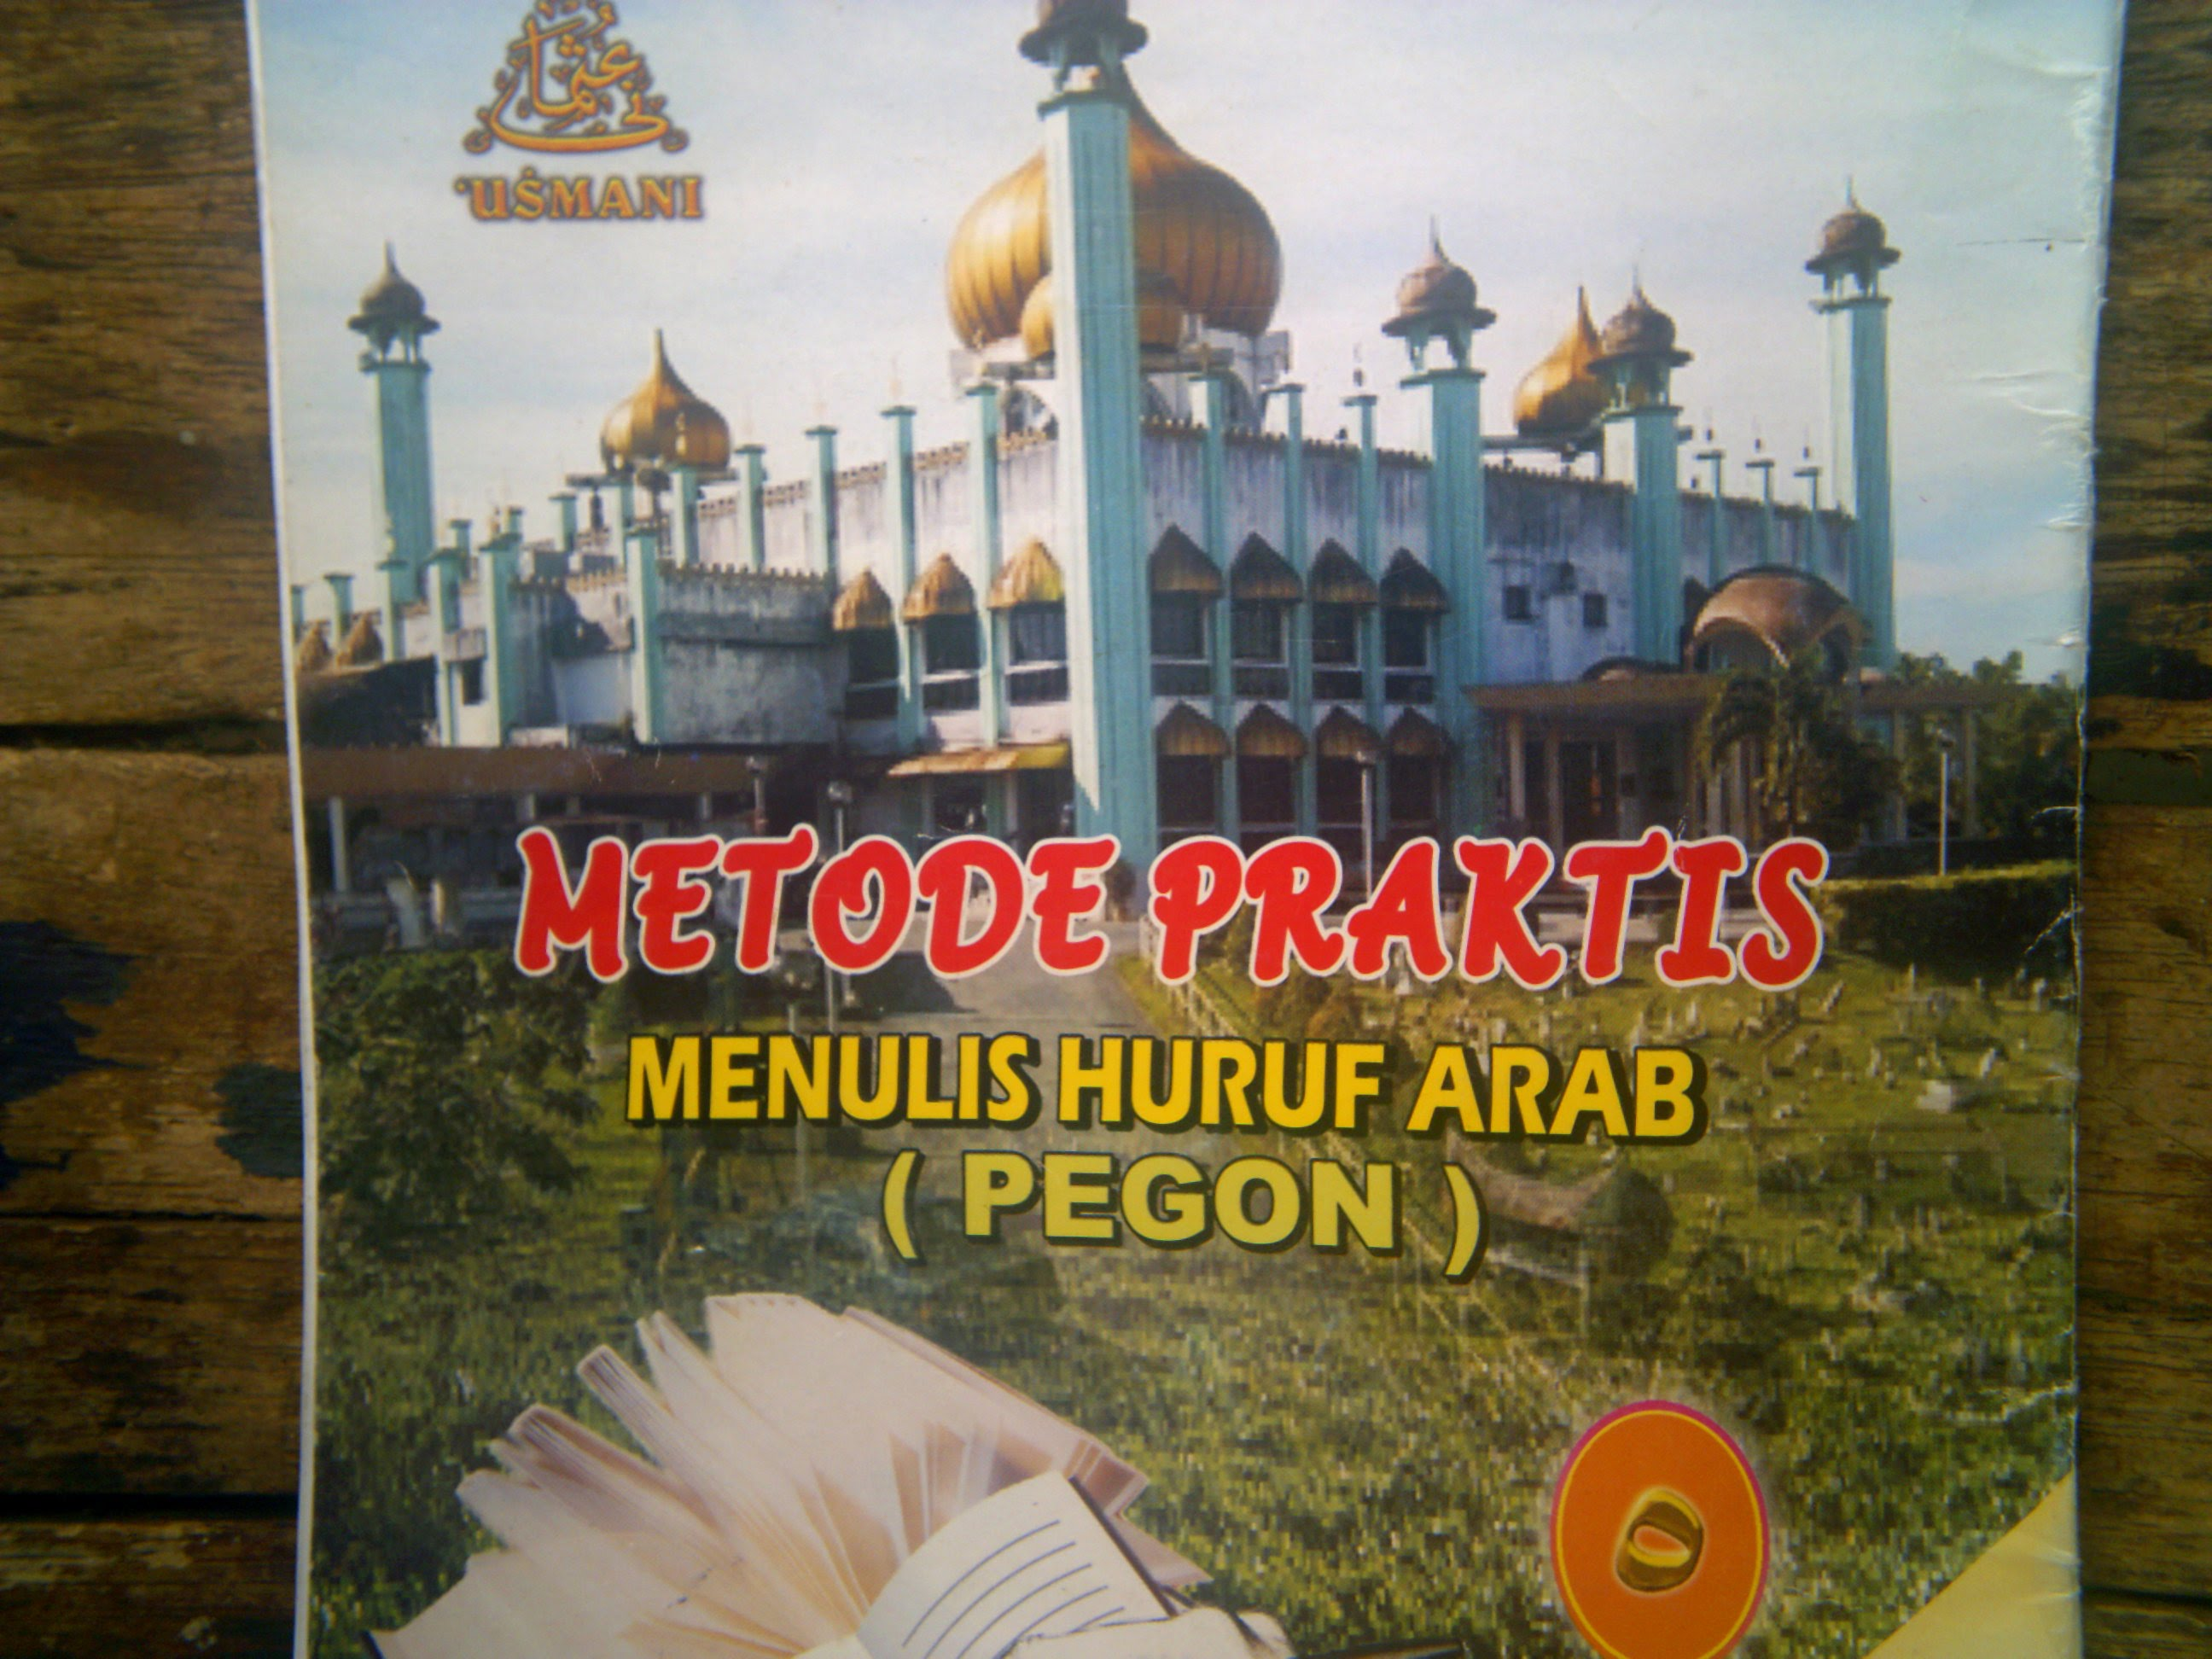 Download Video Buku Metode Praktis Menulis Huruf Arab Pegon Tutorial Bahasa Arab Part 45 Gambar Kaligrafi ☎